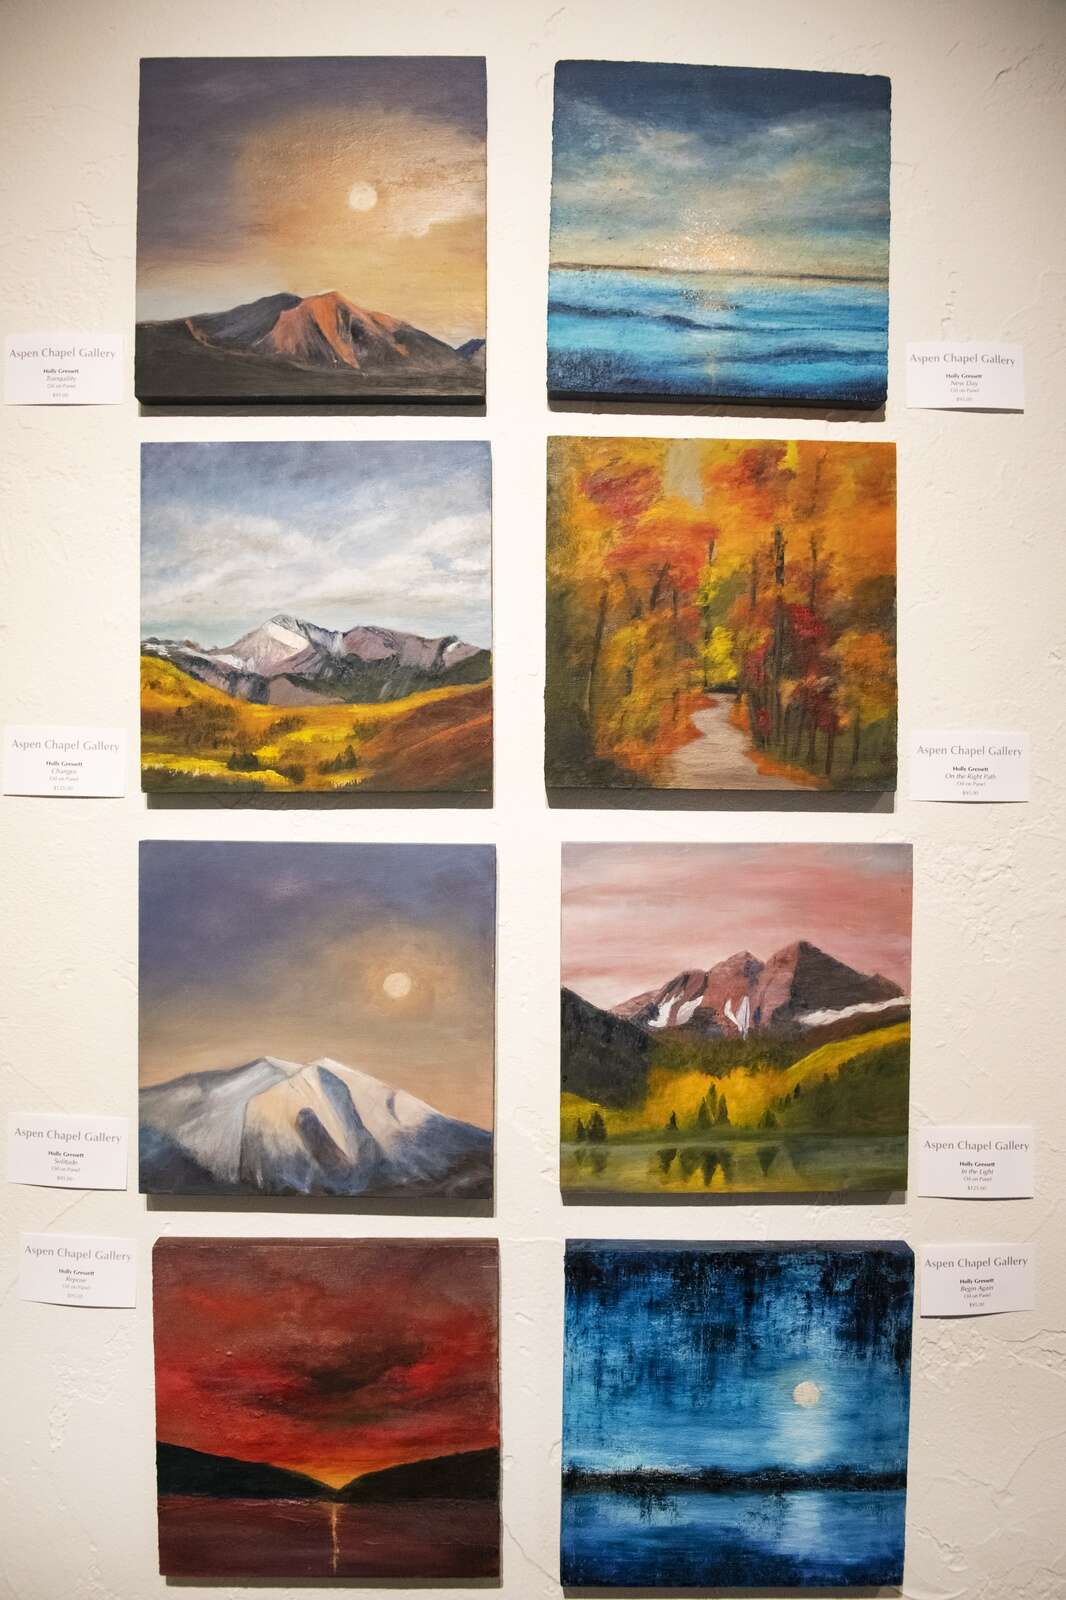 Paintings by Holly Gresset displayed in the Aspen Chapel Gallery for the Small Wonders holiday show and sale on Tuesday, Nov. 17, 2020. (Kelsey Brunner/The Aspen Times)